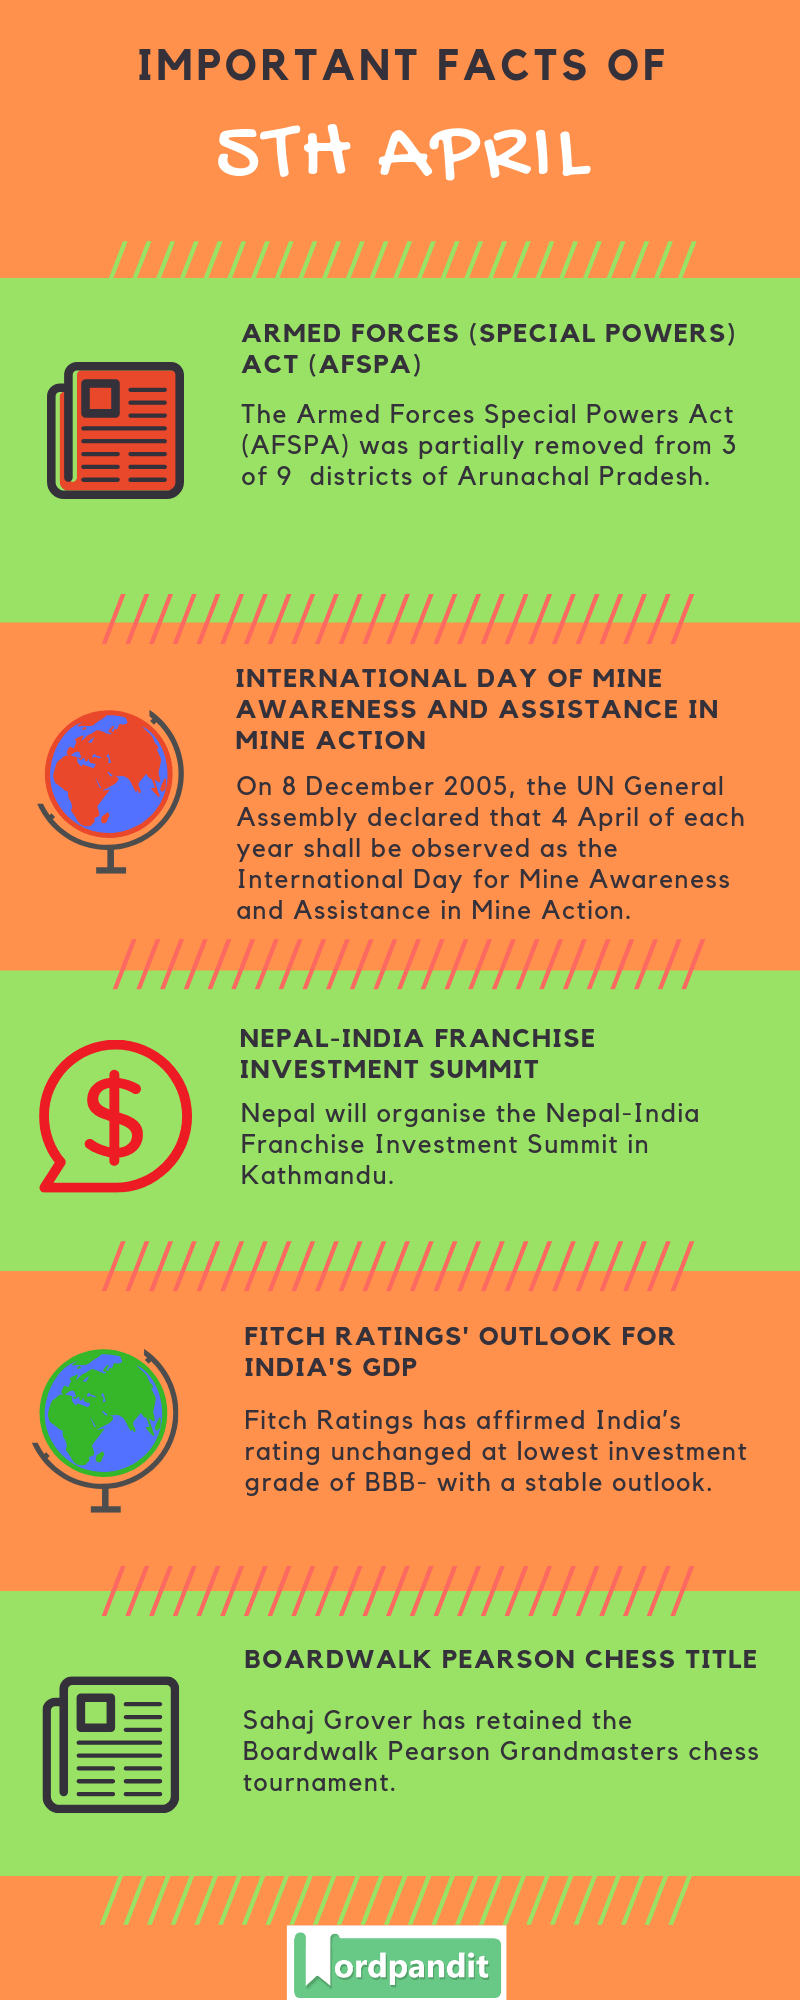 Daily Current Affairs 5 April 2019 Current Affairs Quiz 5 April 2019 Current Affairs Infographic